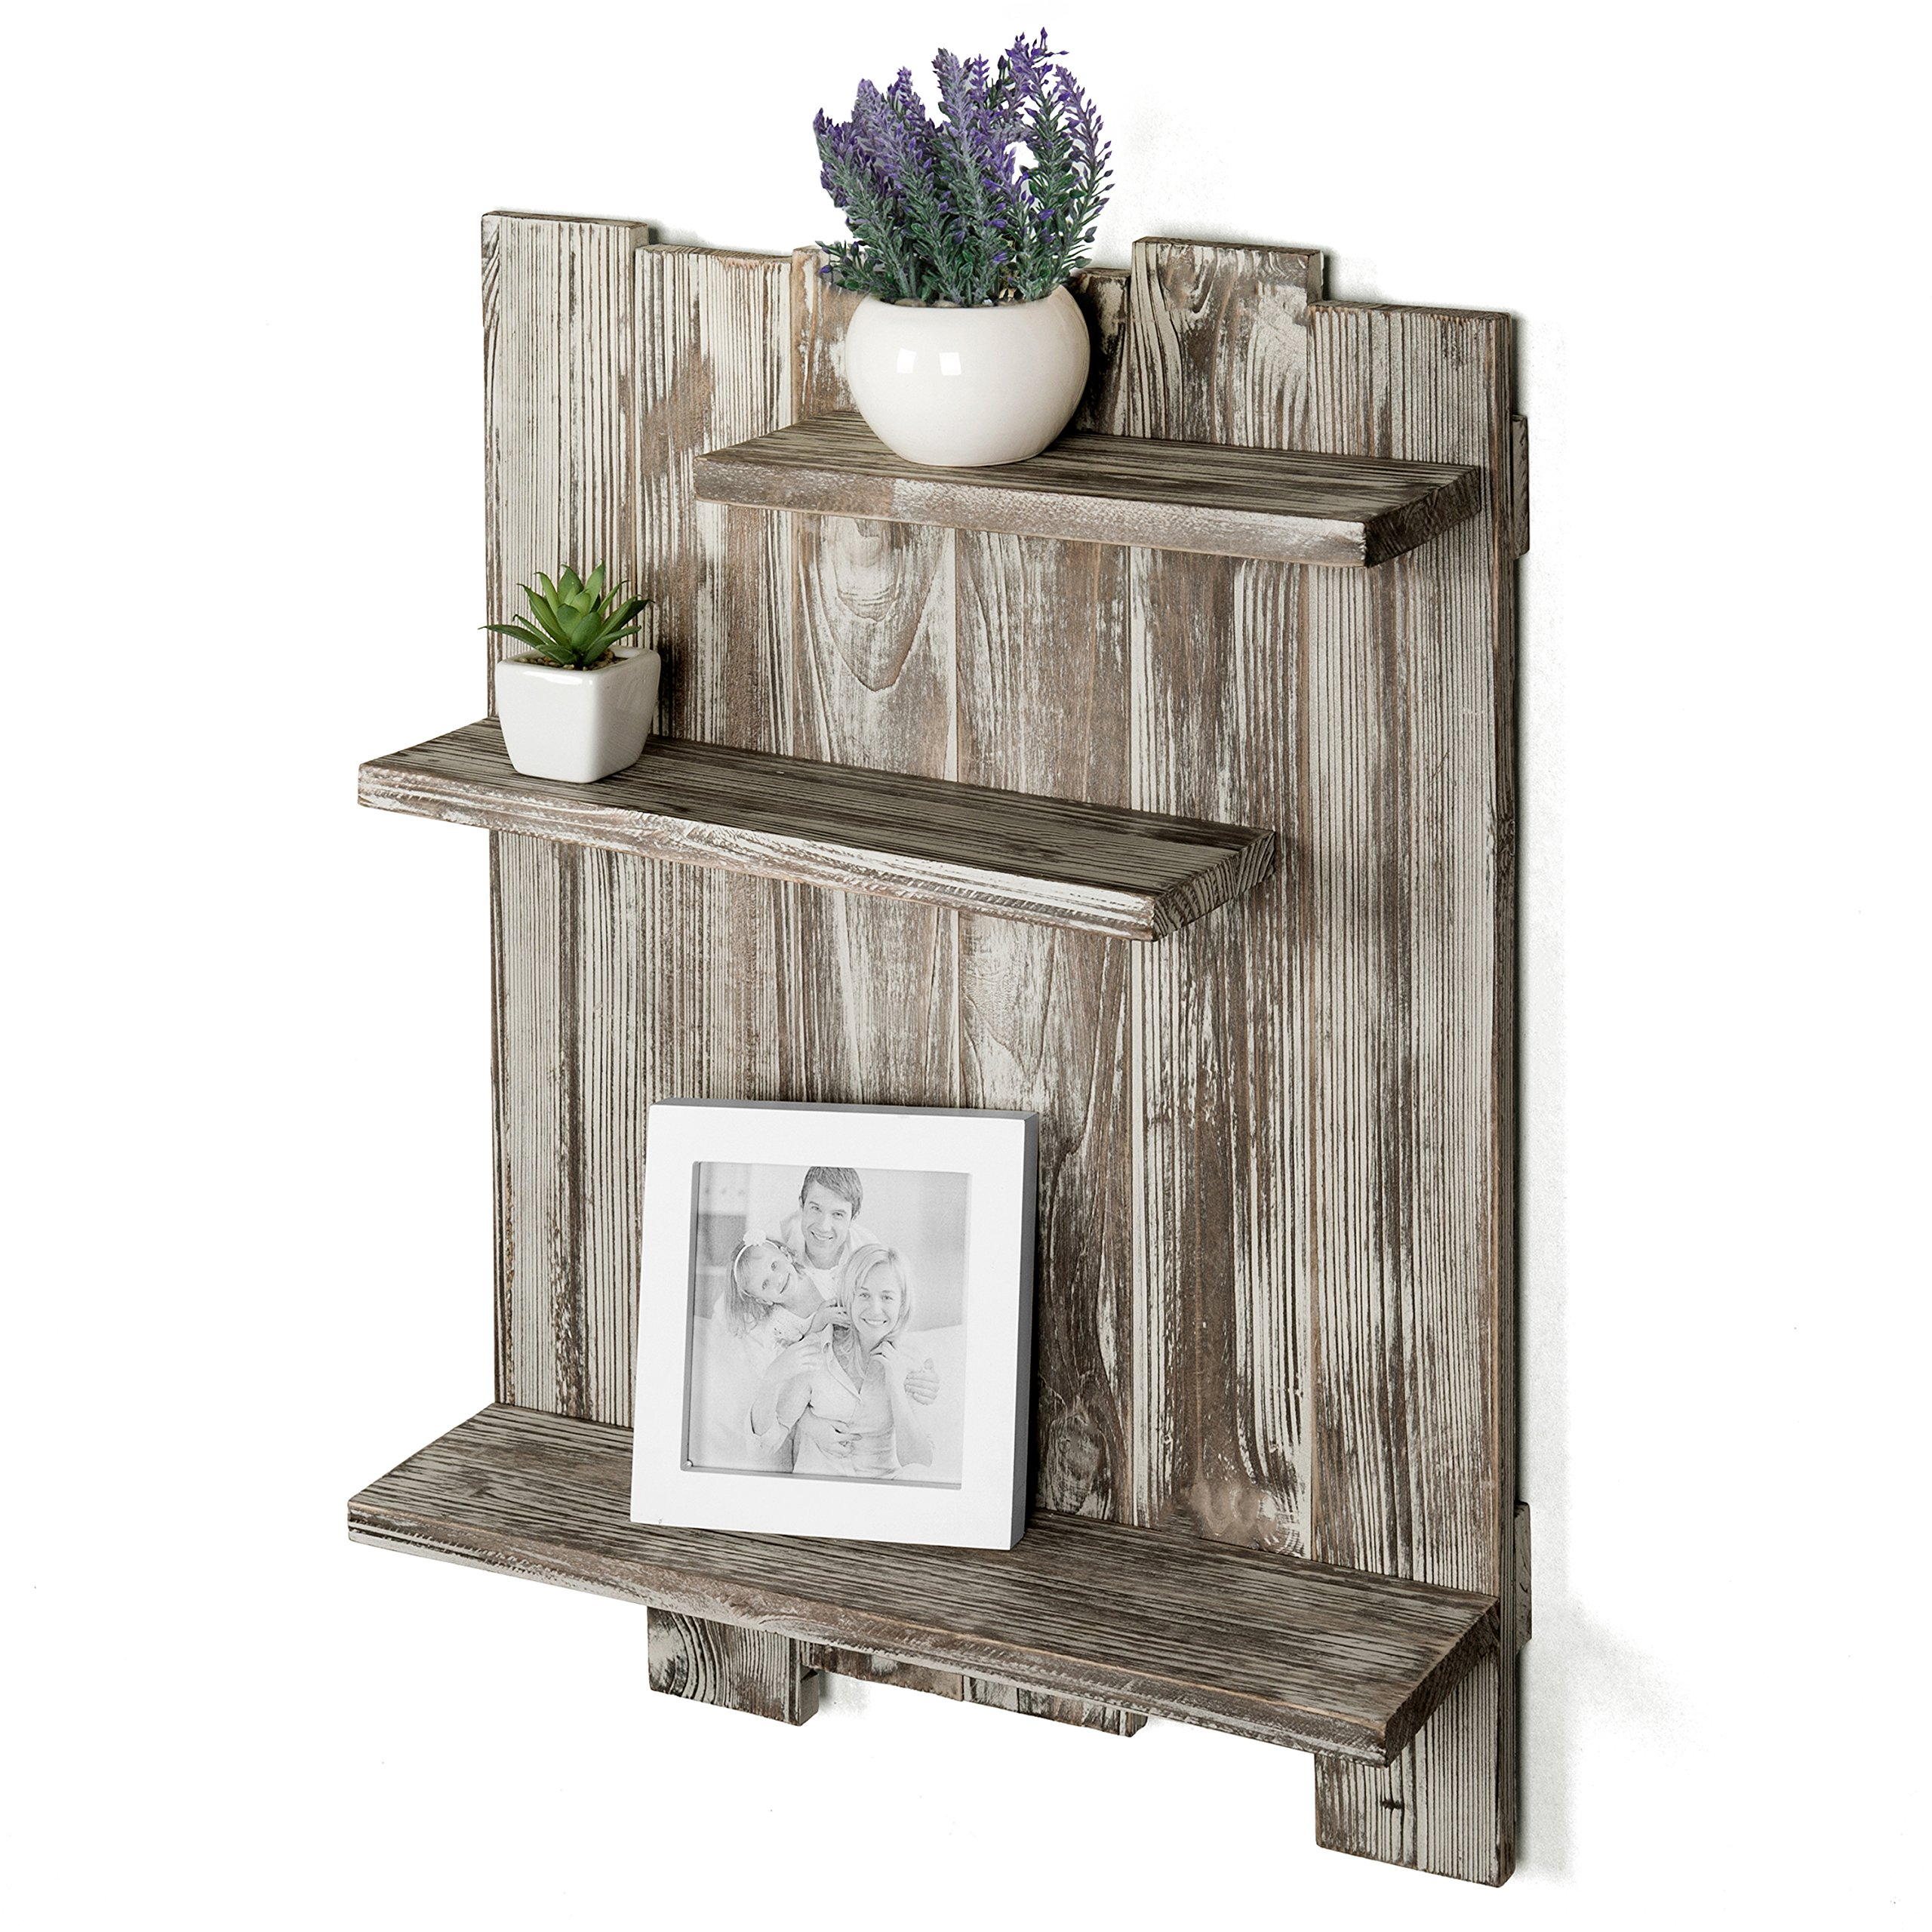 MyGift Rustic Torched Wood Pallet-Style Wall Mounted 3-Tier Decorative Display Shelf by MyGift